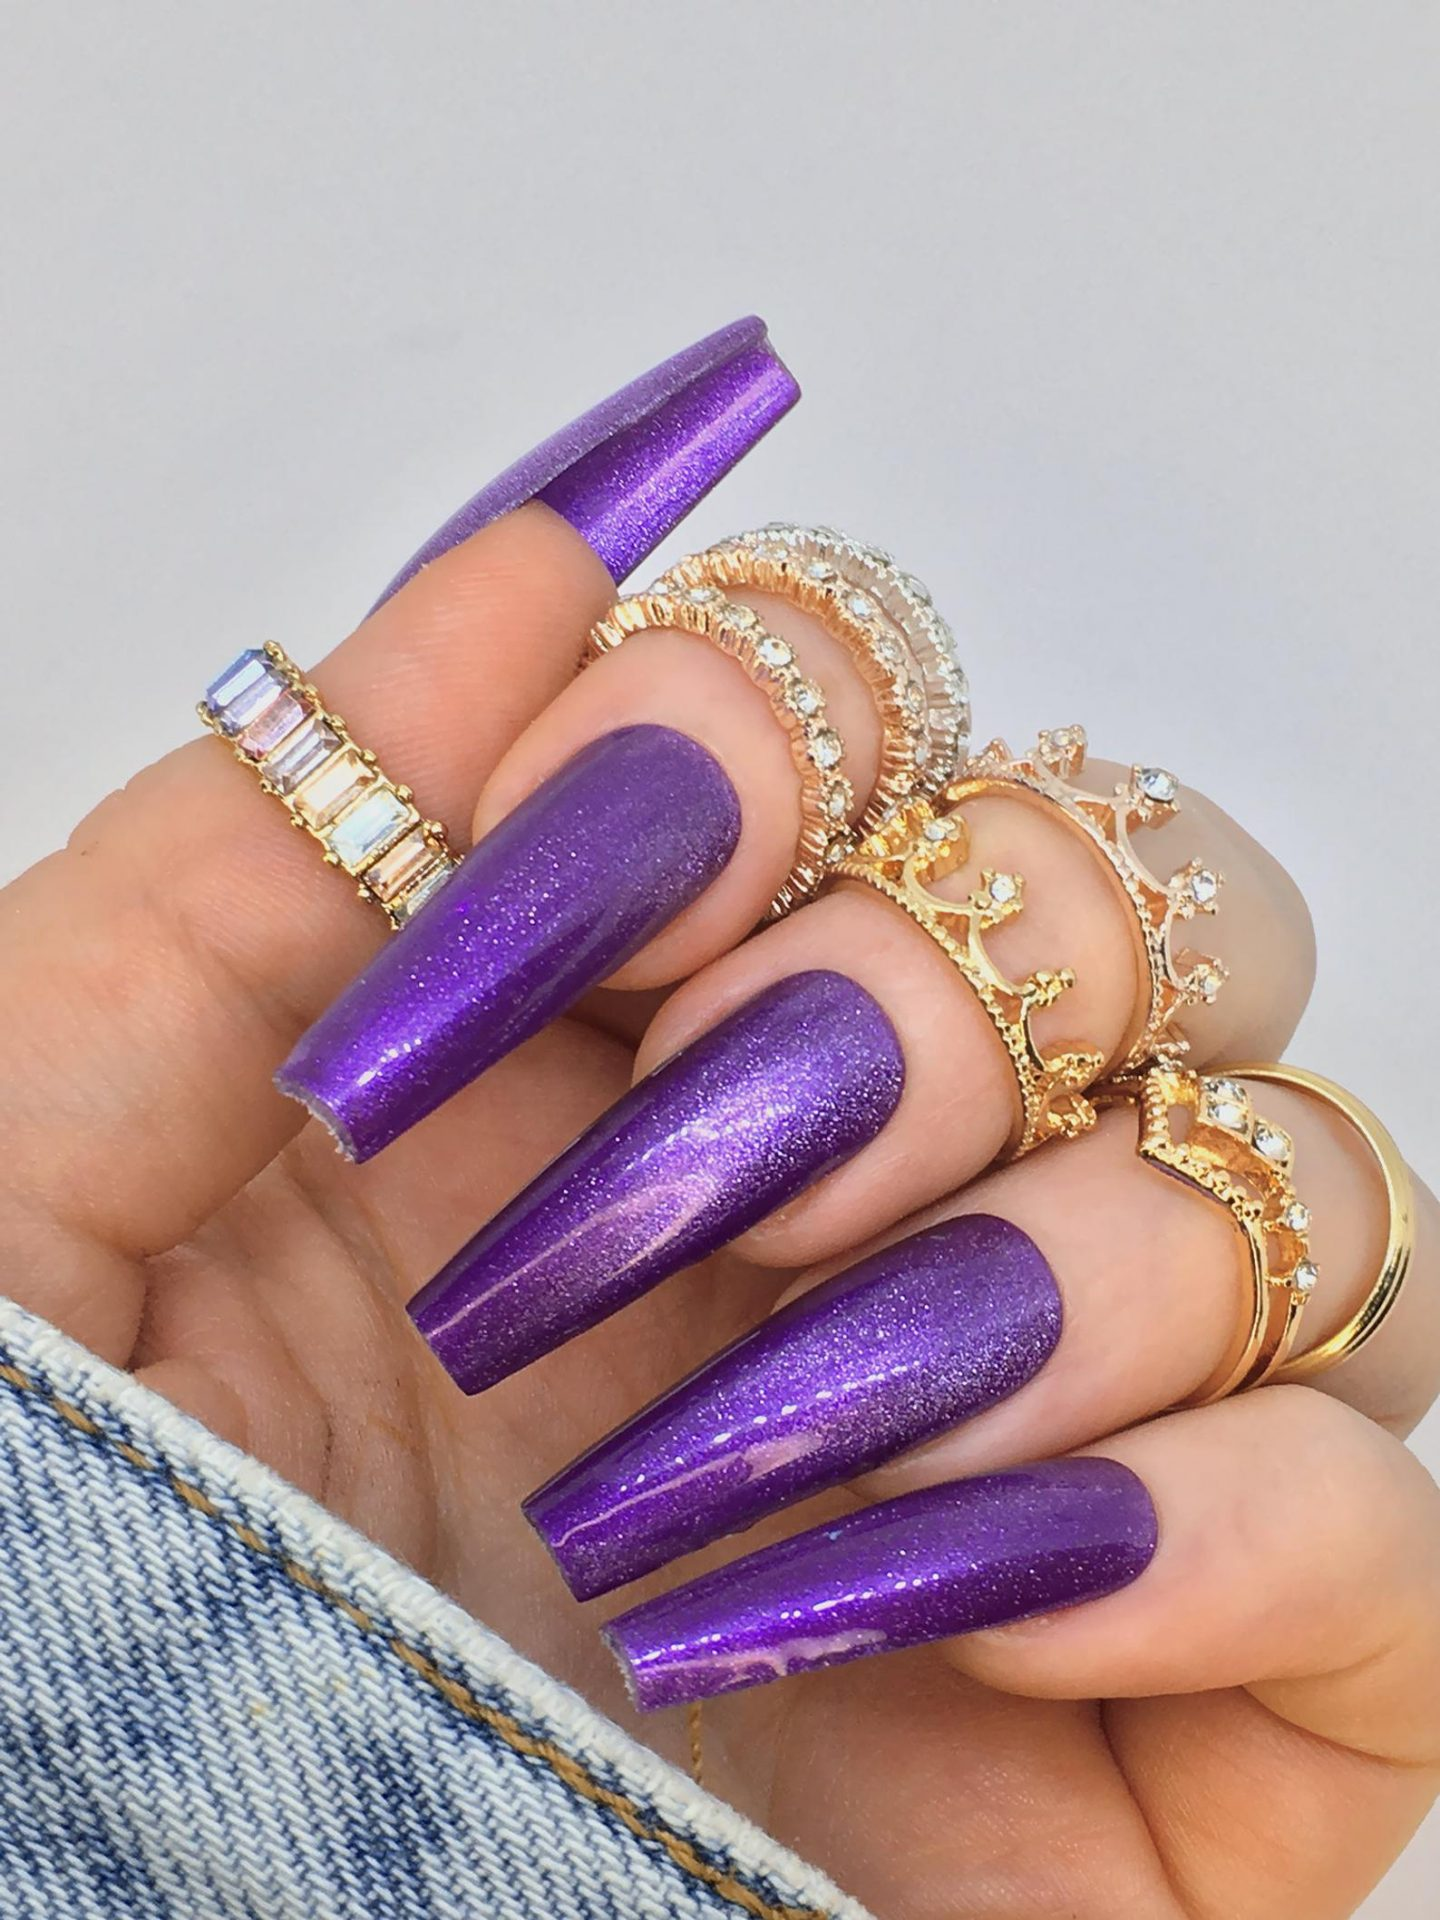 Long glossy purple nails with glitter